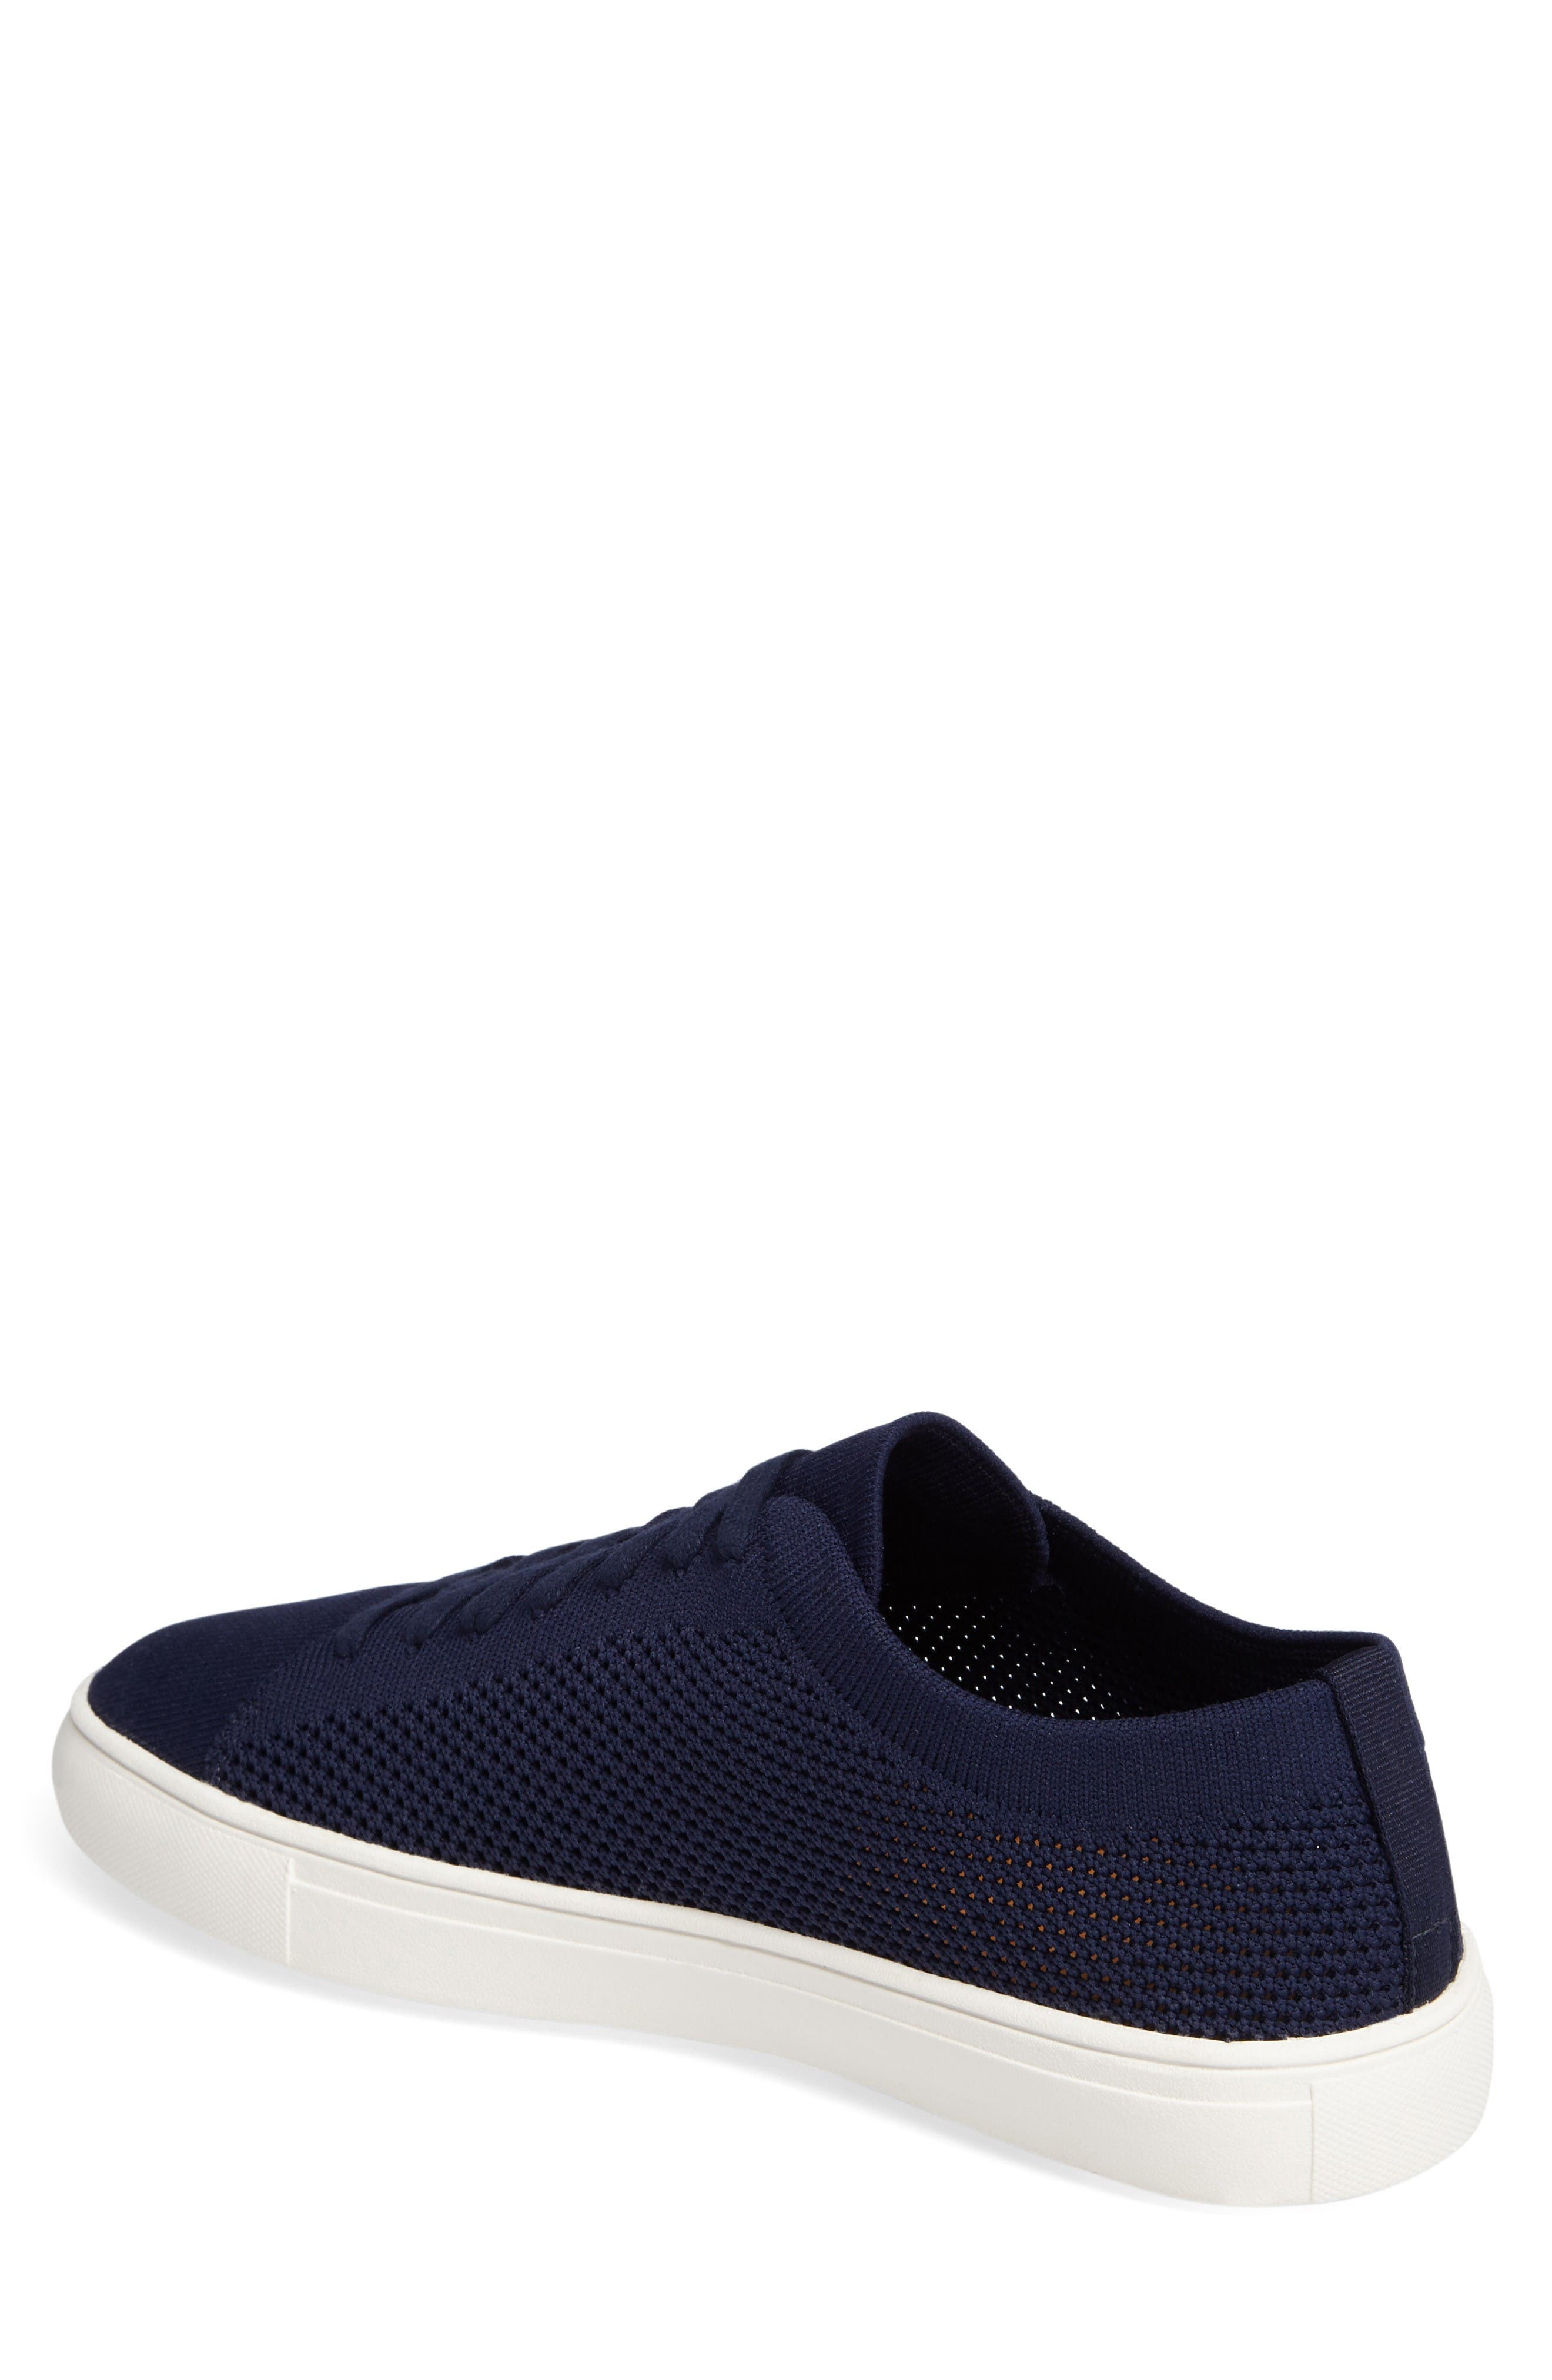 On the Road Woven Sneaker,                             Alternate thumbnail 2, color,                             Navy